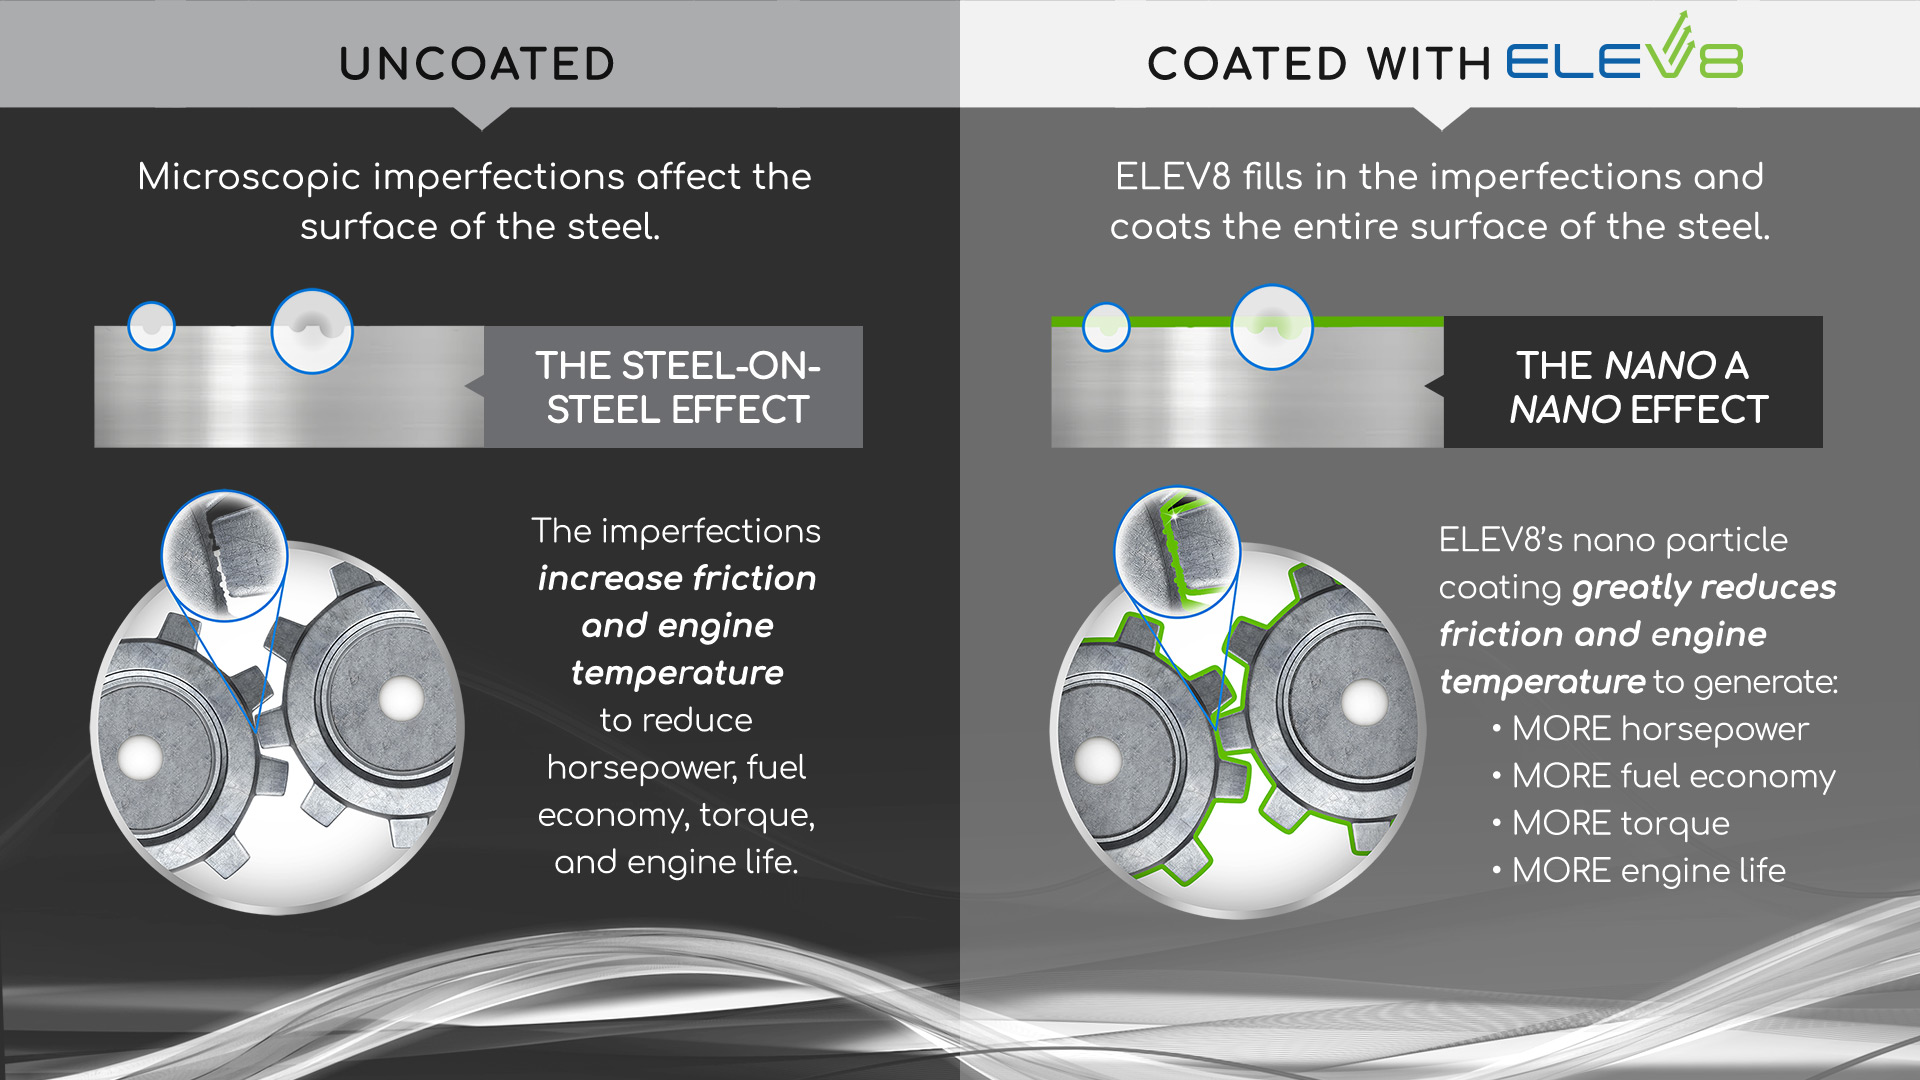 Uncoated vs Coated with ELEV8